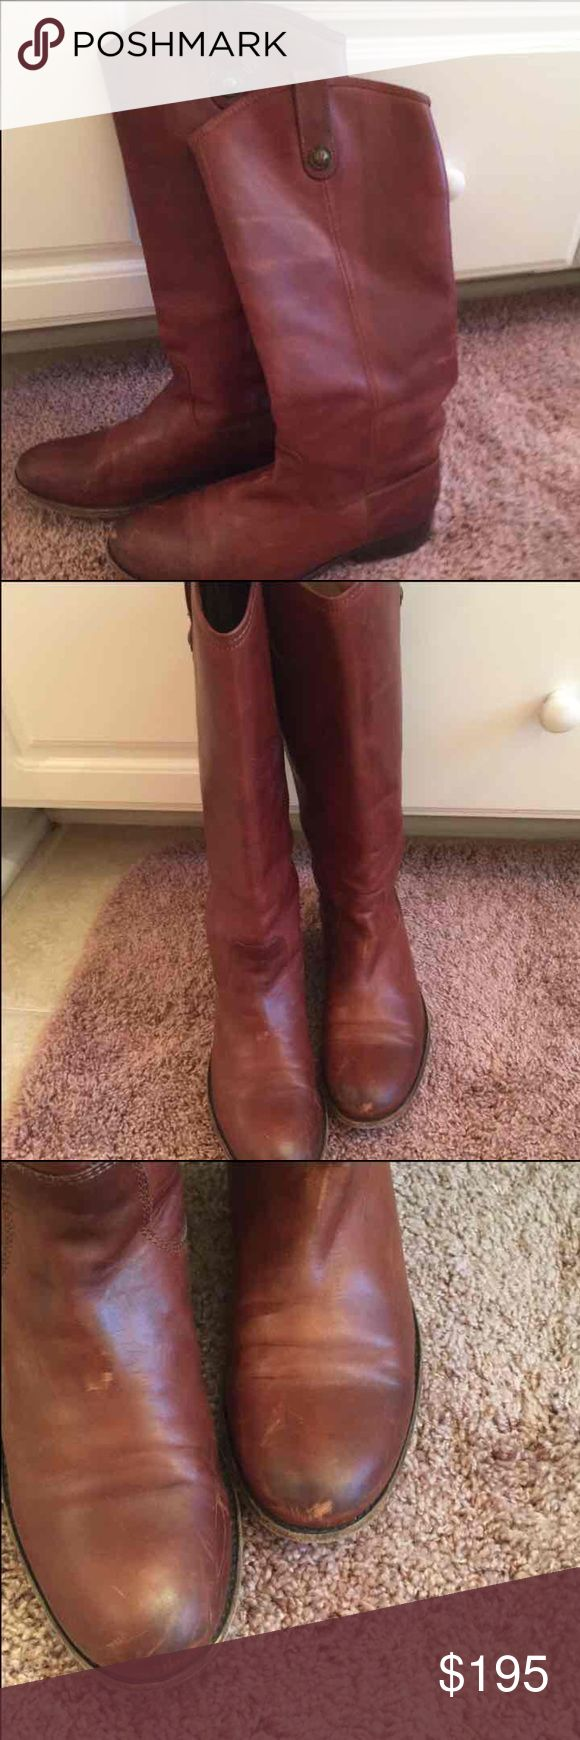 Frye Melissa Button Boots Frye Melissa Button Boots in cognac Frye Shoes